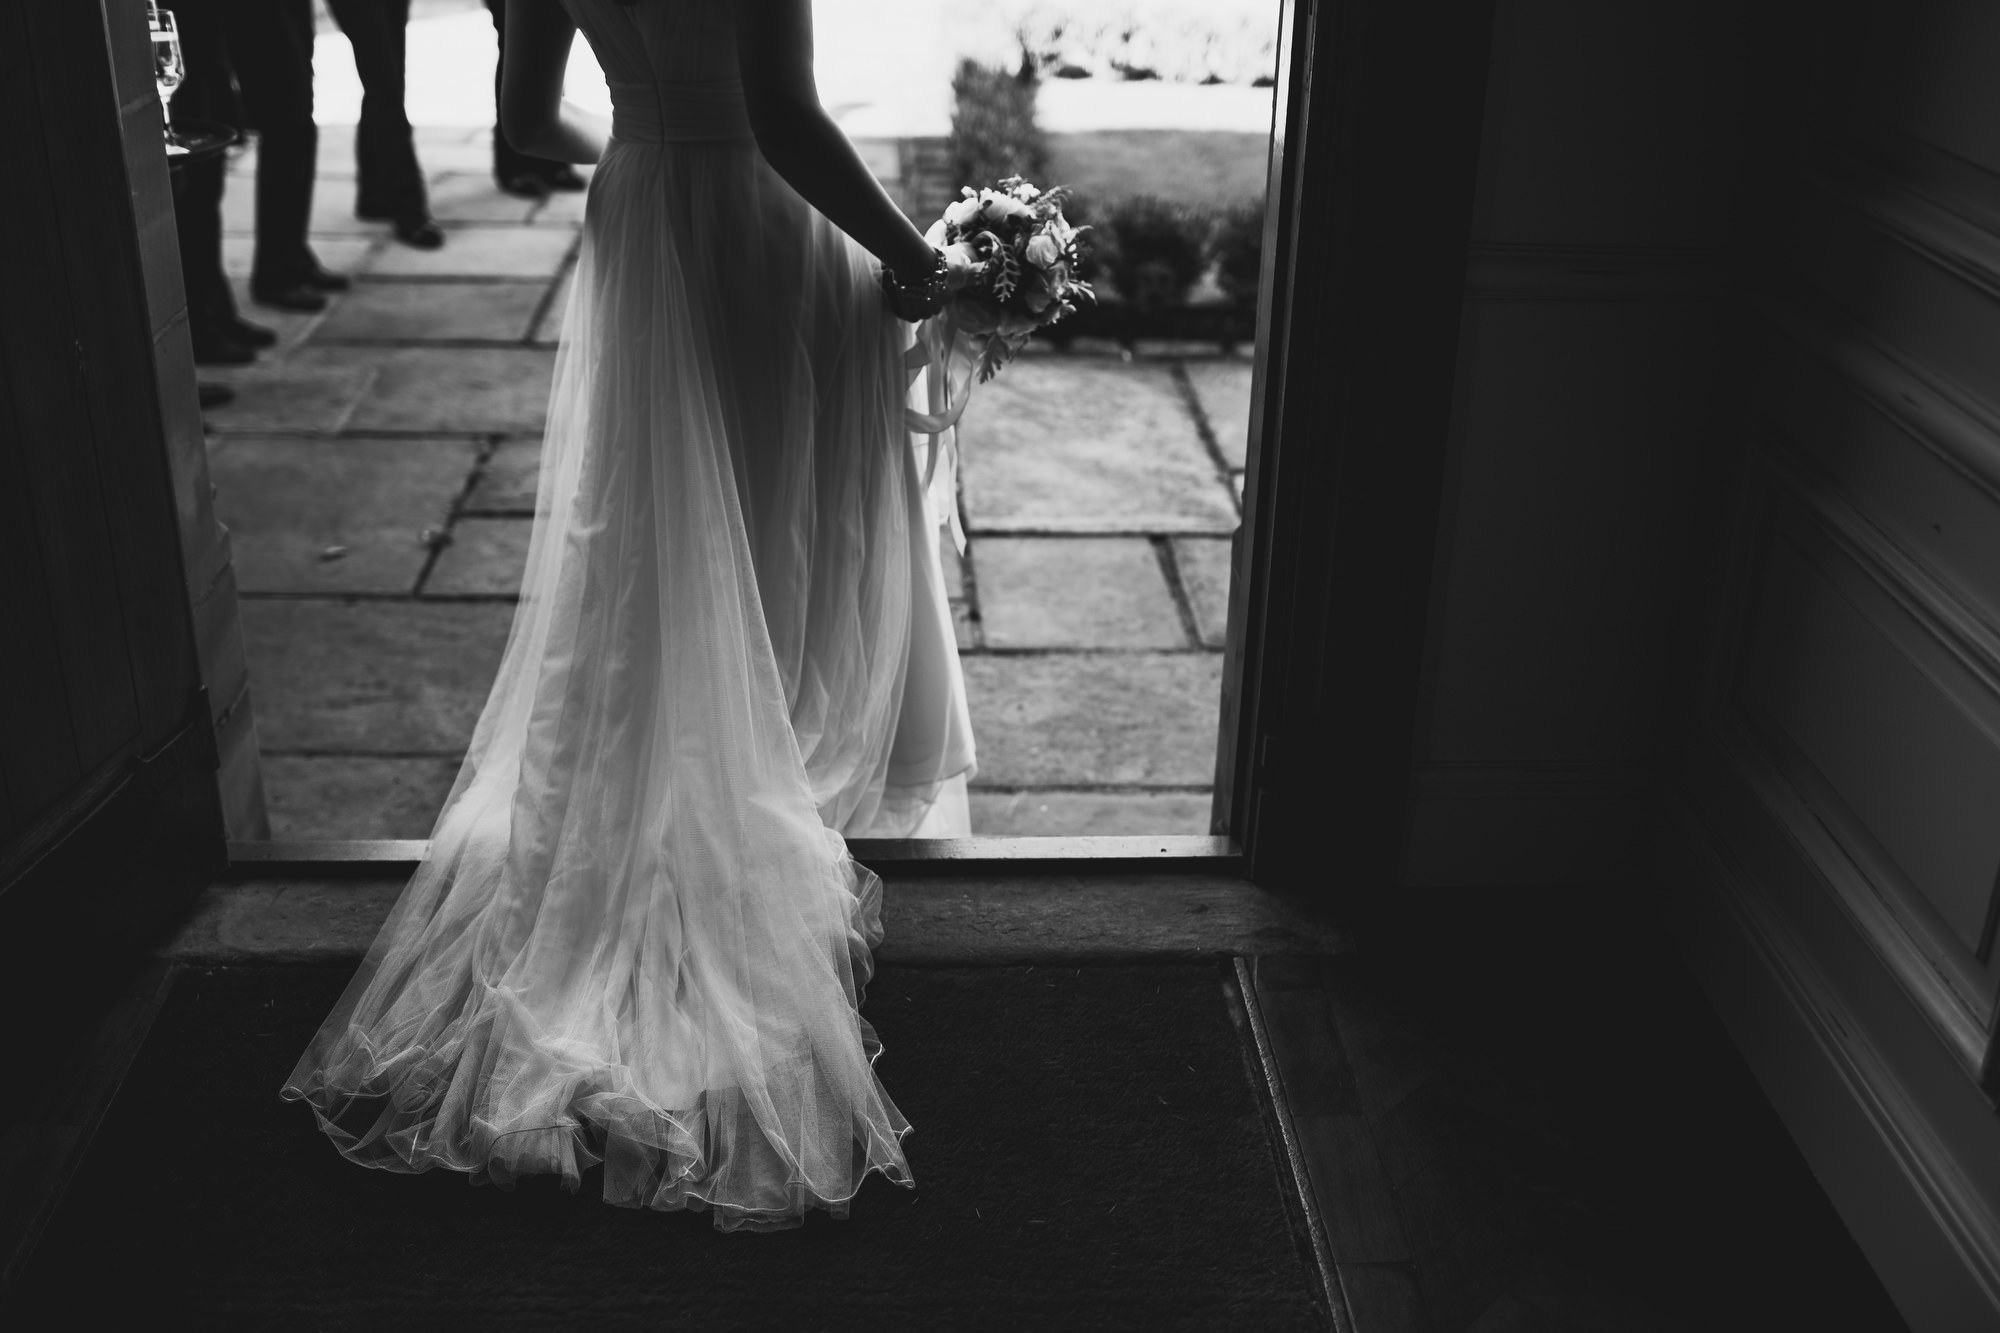 colshaw hall wedding photographer - ARJ Photography http://www.arj-photo.co.uk/